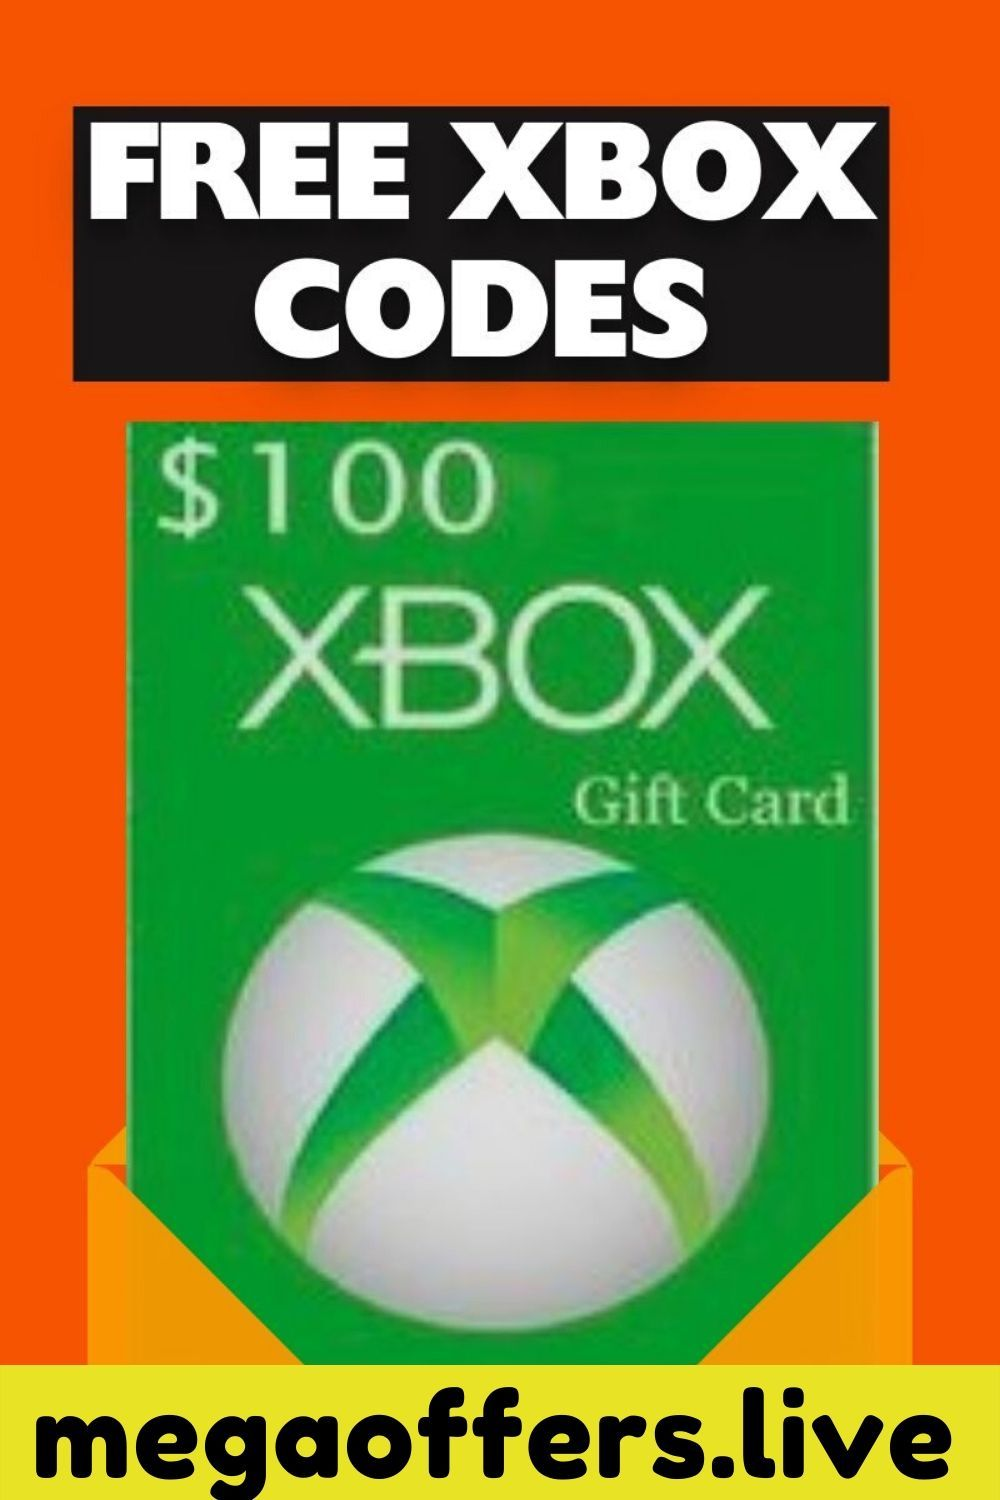 How To Get Free Xbox Gift Cards Free 100 Xbox Codes Xbox Gift Card Xbox Gifts Free Gift Card Generator